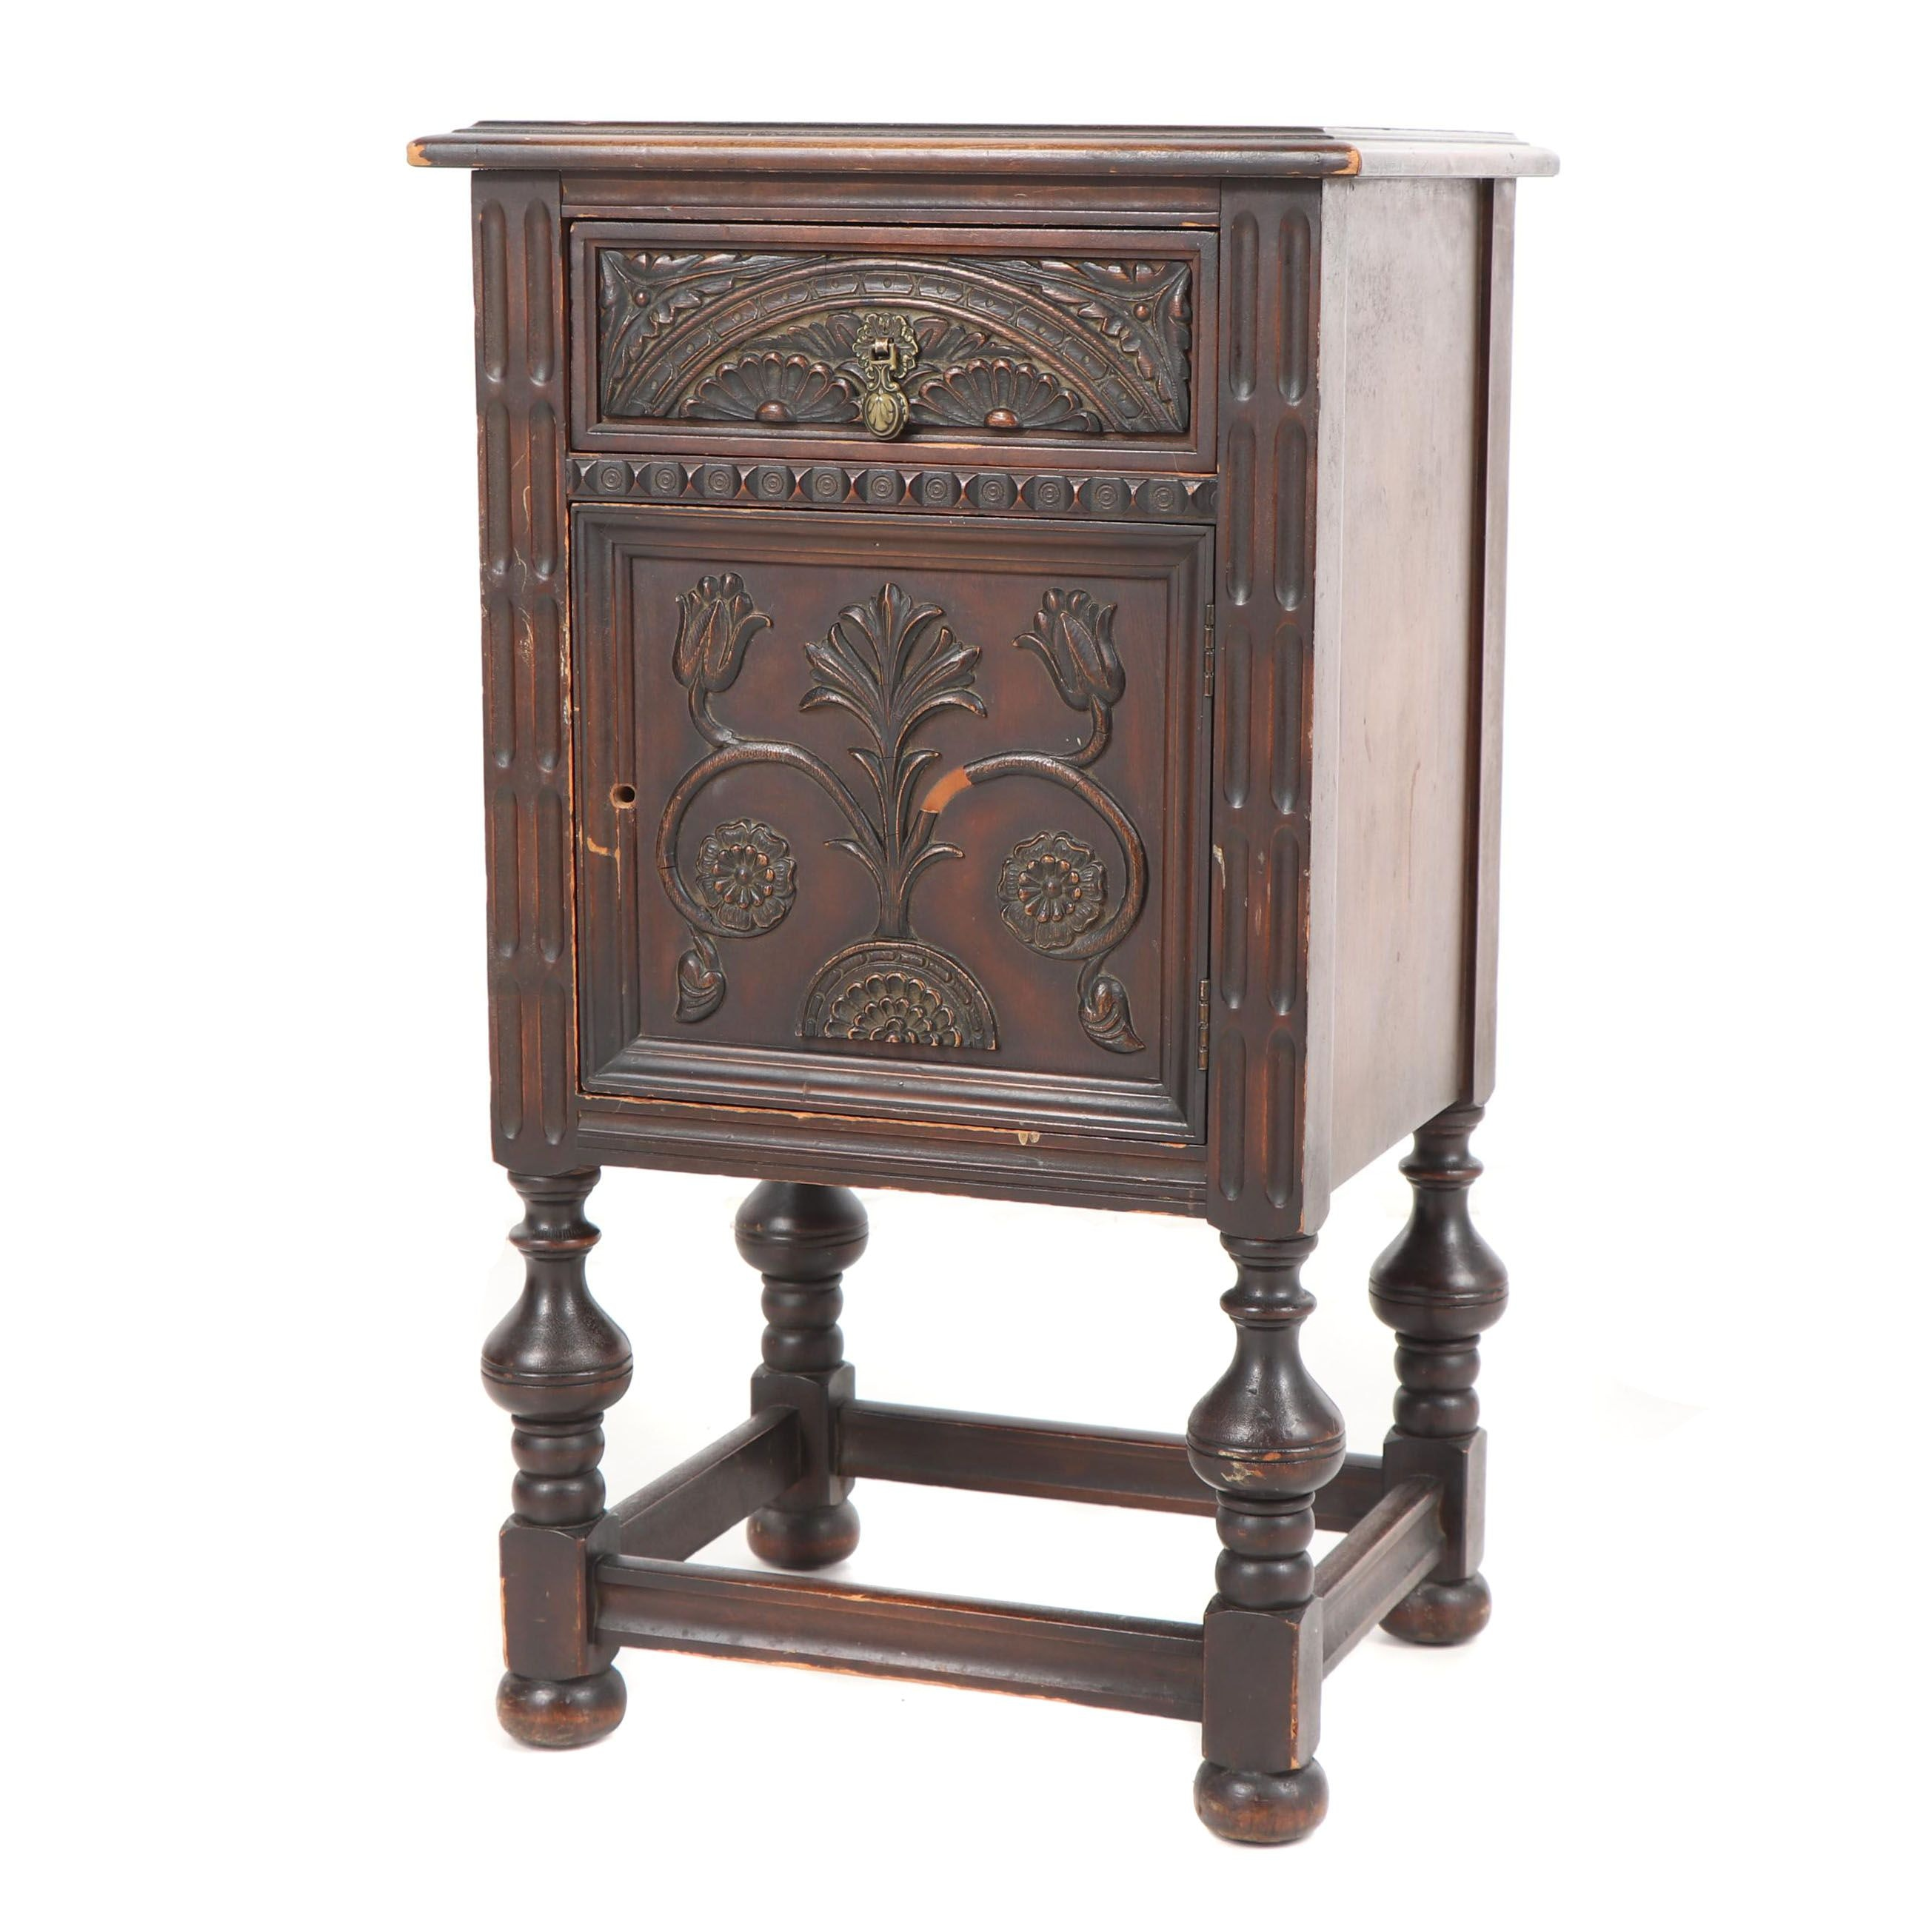 Jacobean Revival Style Walnut Side Table, Early 20th Century